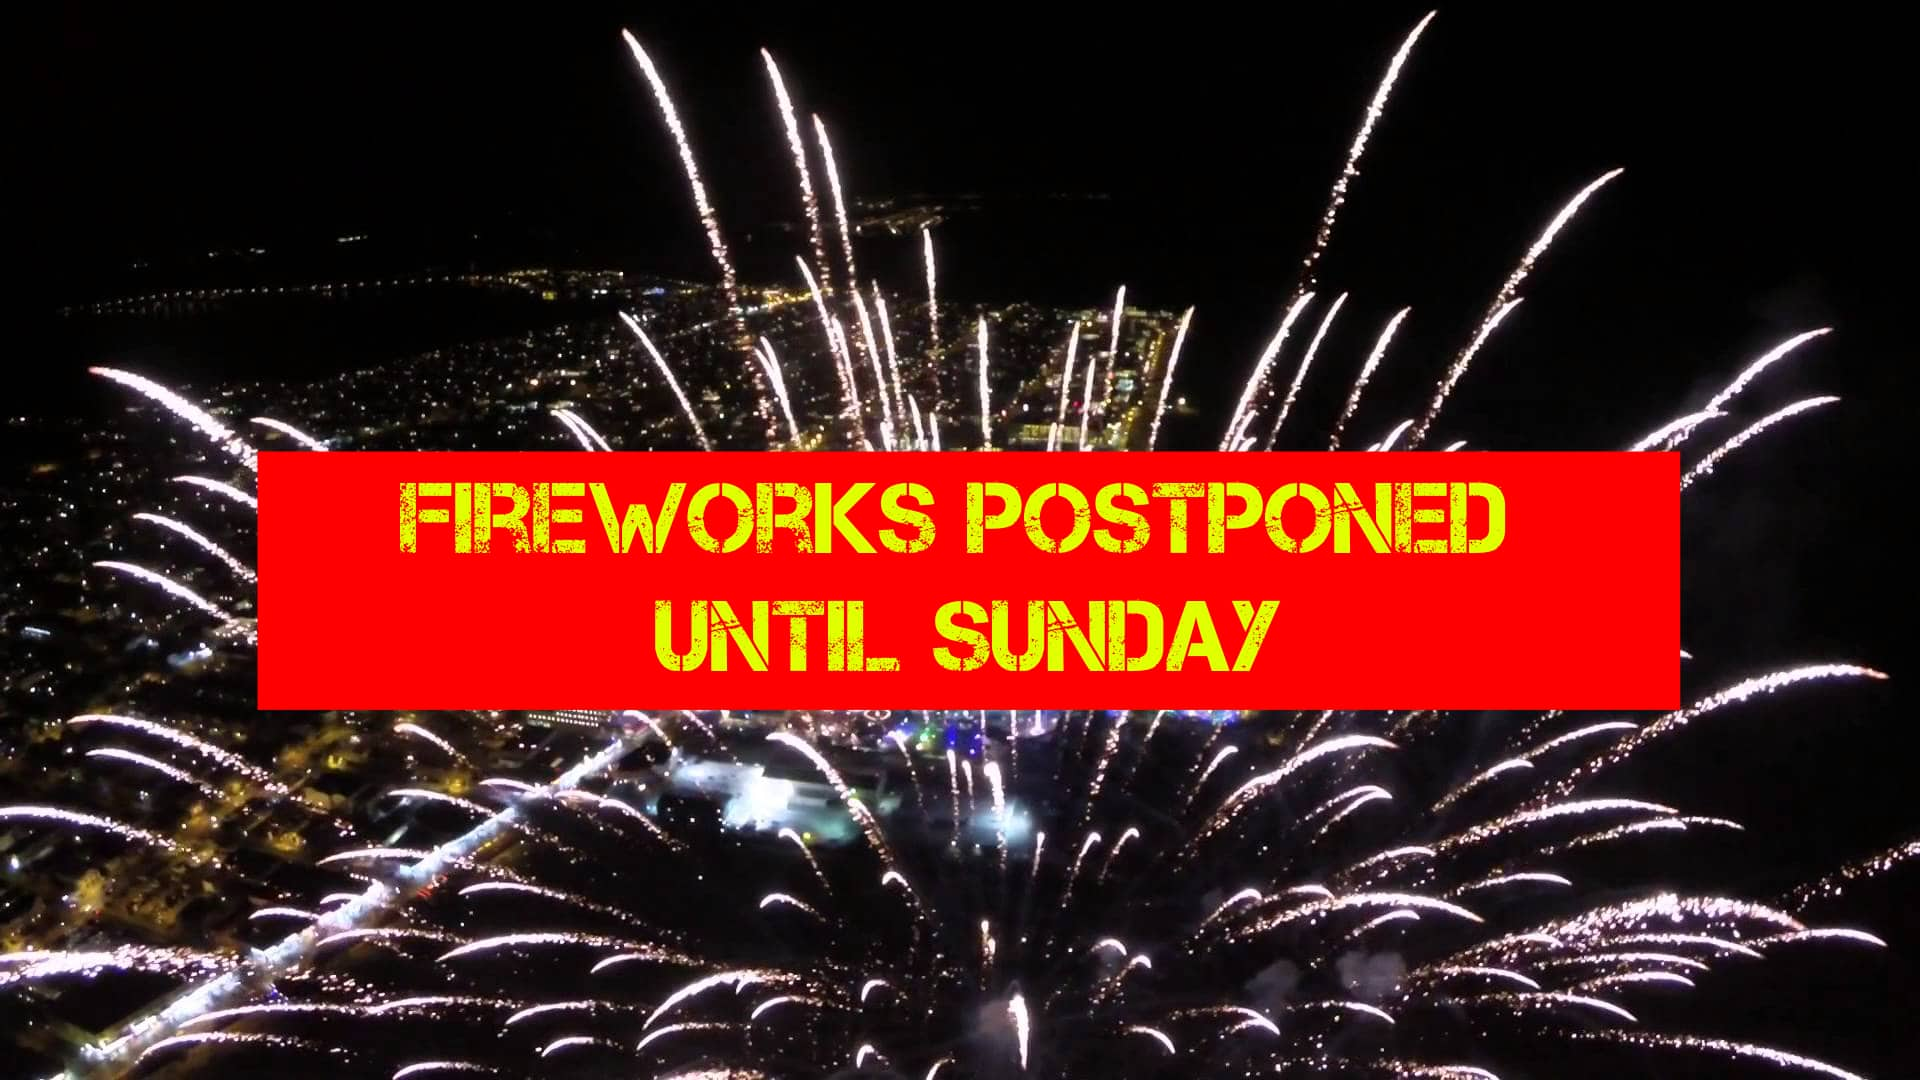 Fireworks Postponed!